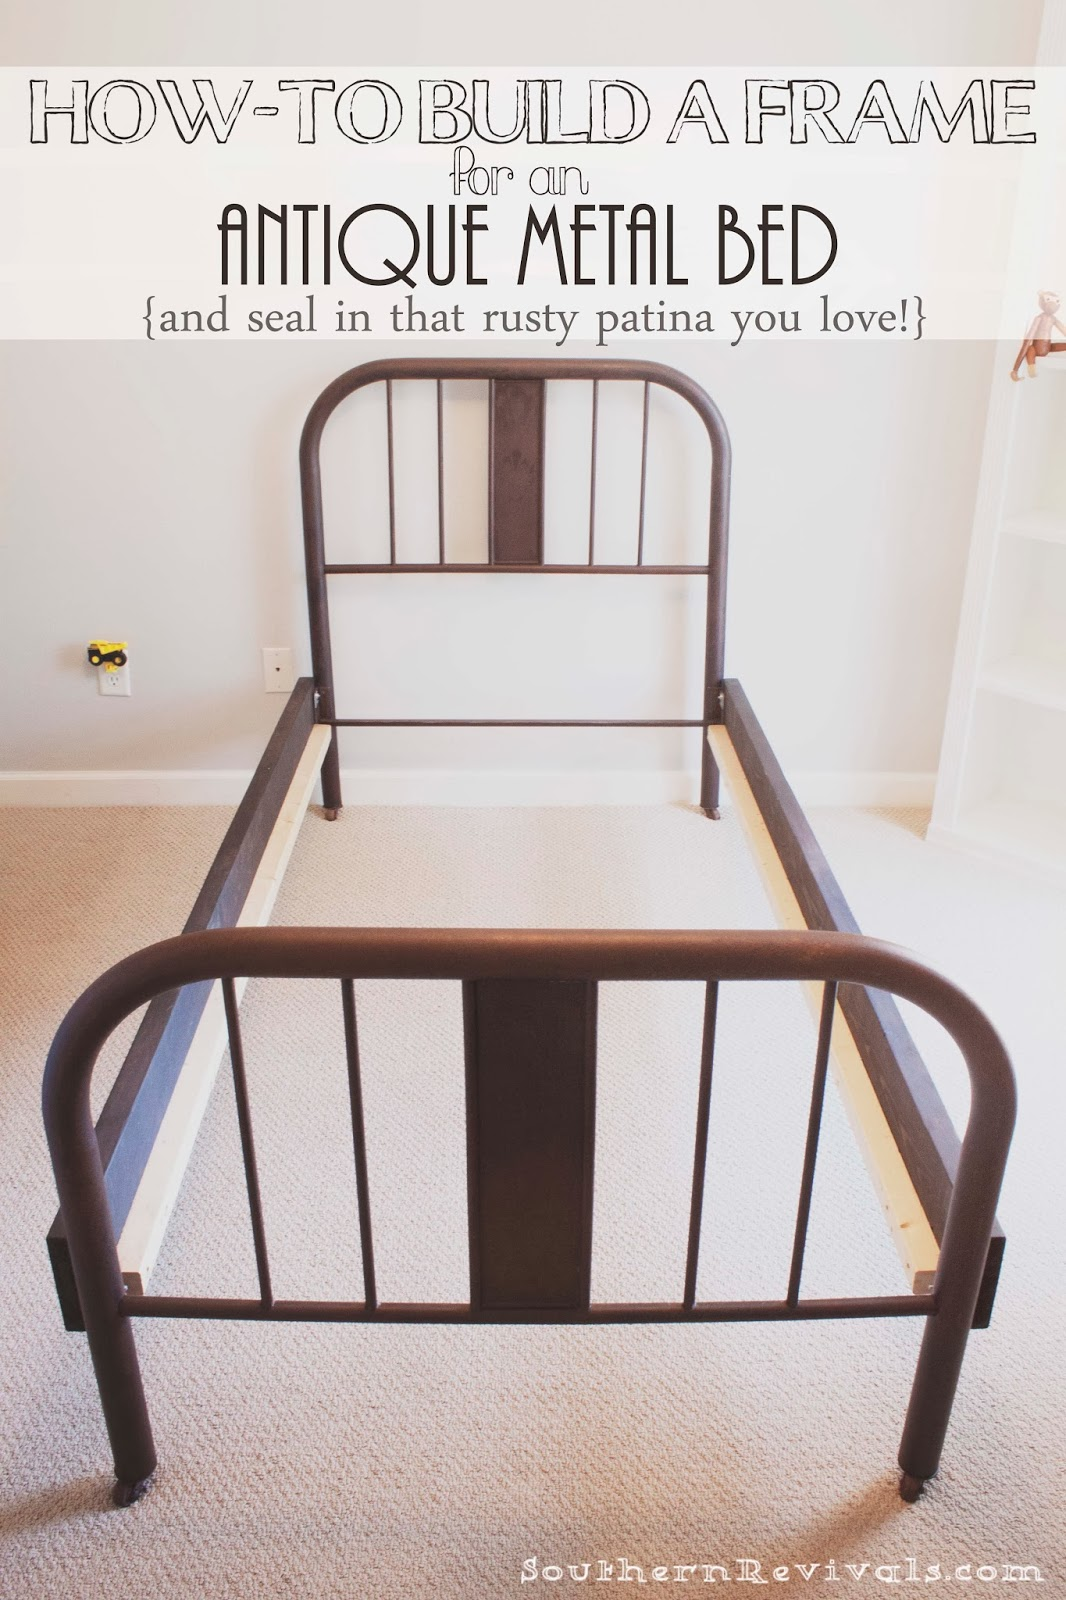 How to Make a Frame for an Antique Metal Bed | And Seal-in a Rusty ...